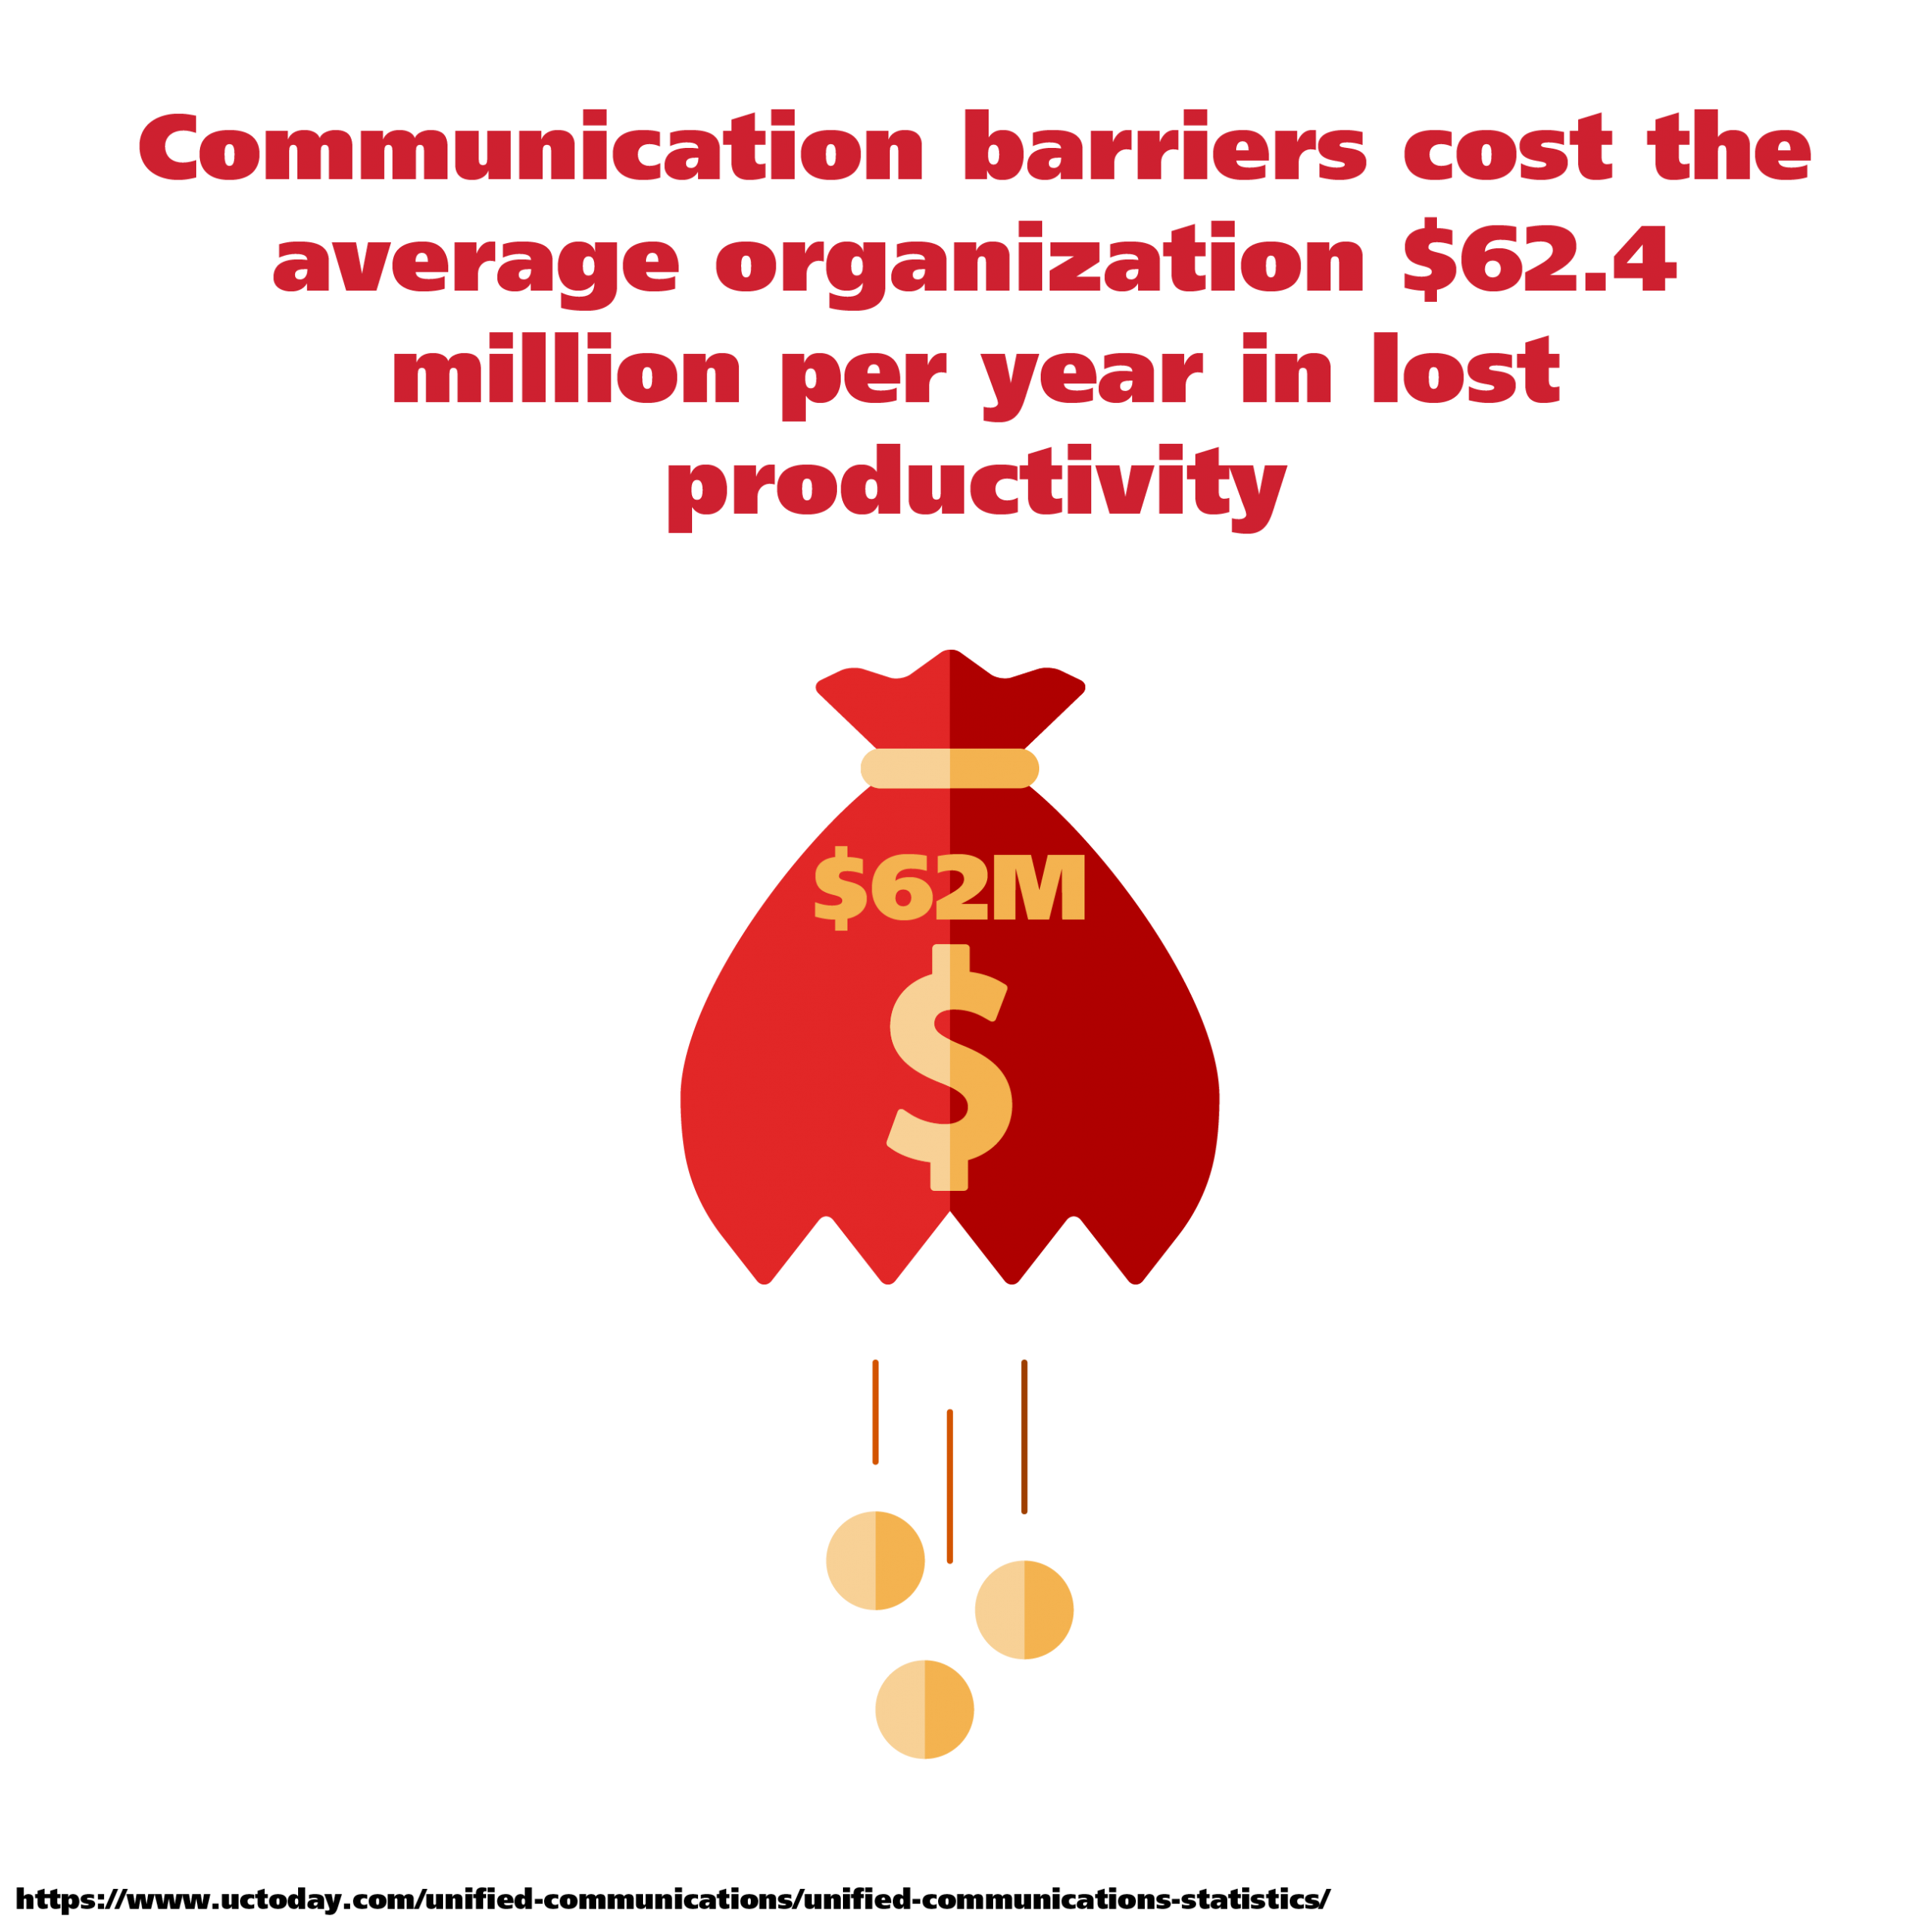 Communication barriers cost the average organization $62 million per year